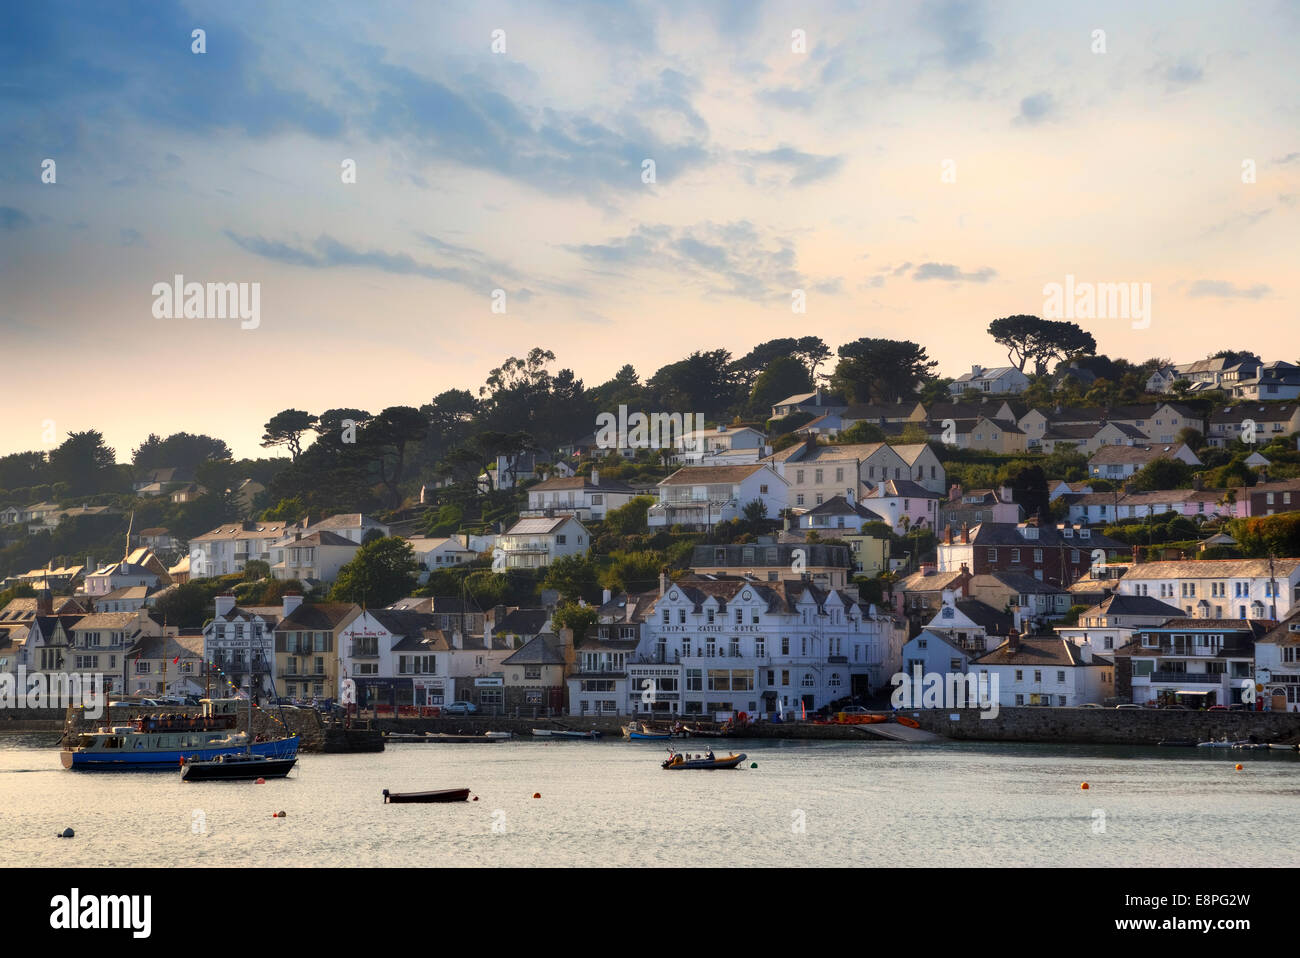 St Mawes, Cornwall, England, United Kingdom - Stock Image